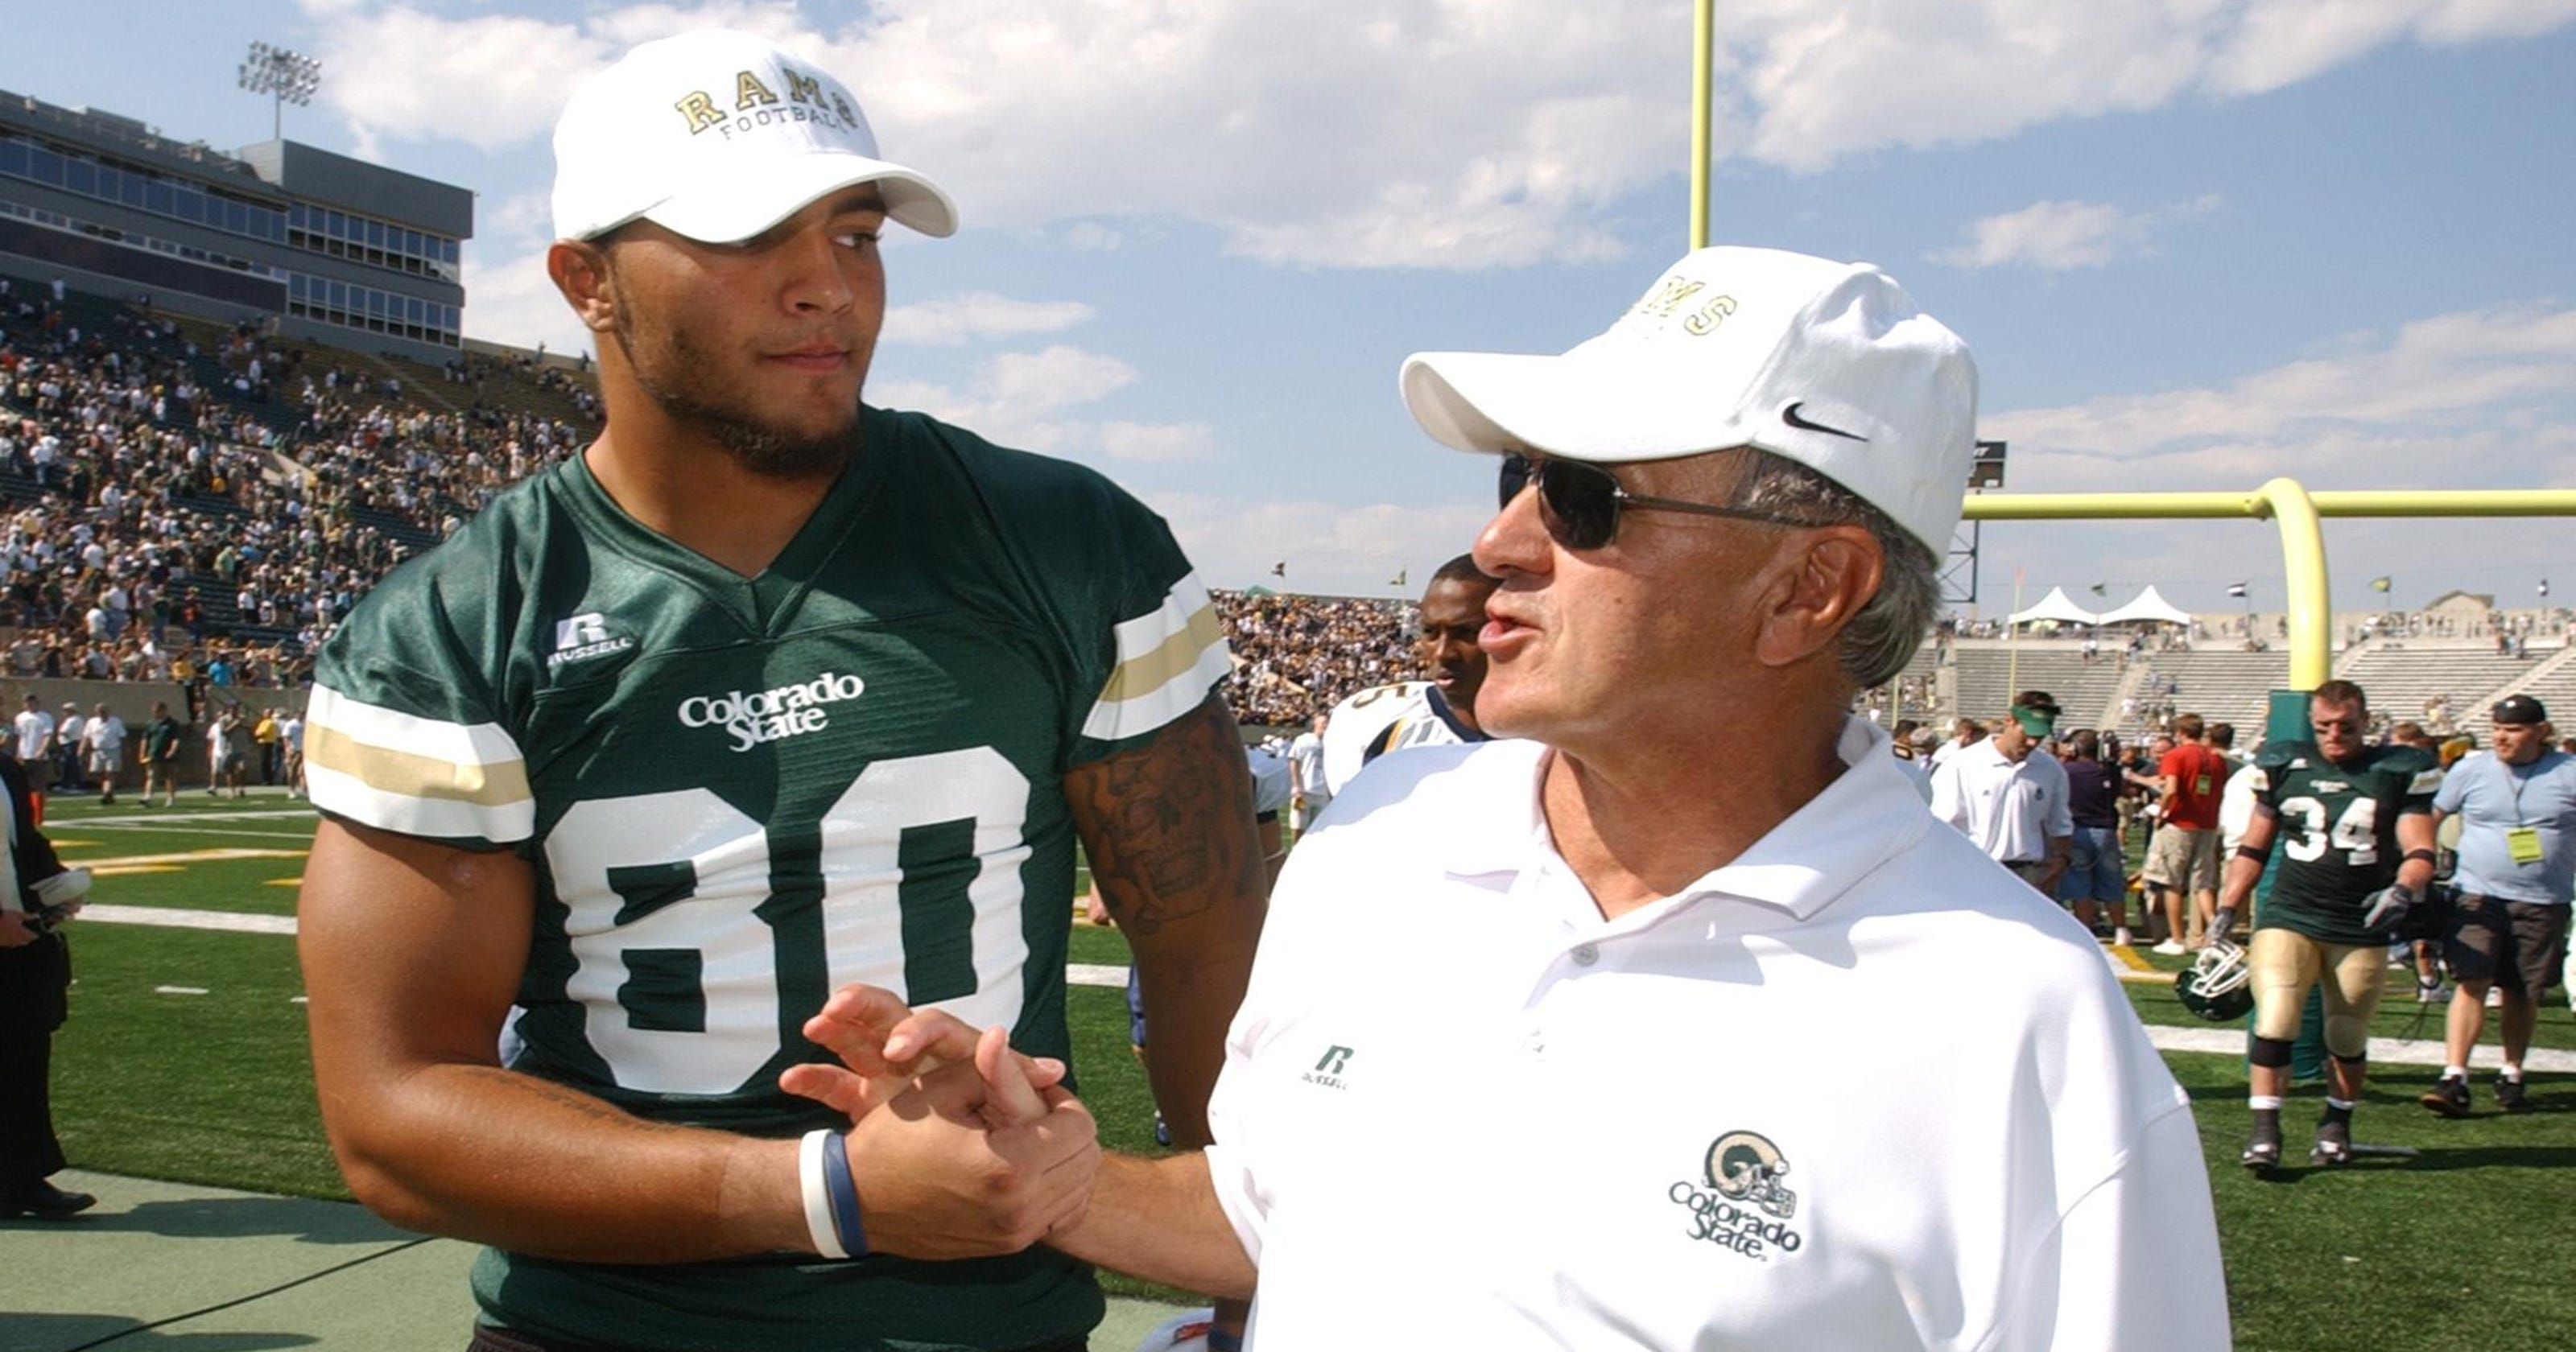 Stephens: Sonny Lubick's legacy doesn't need the College